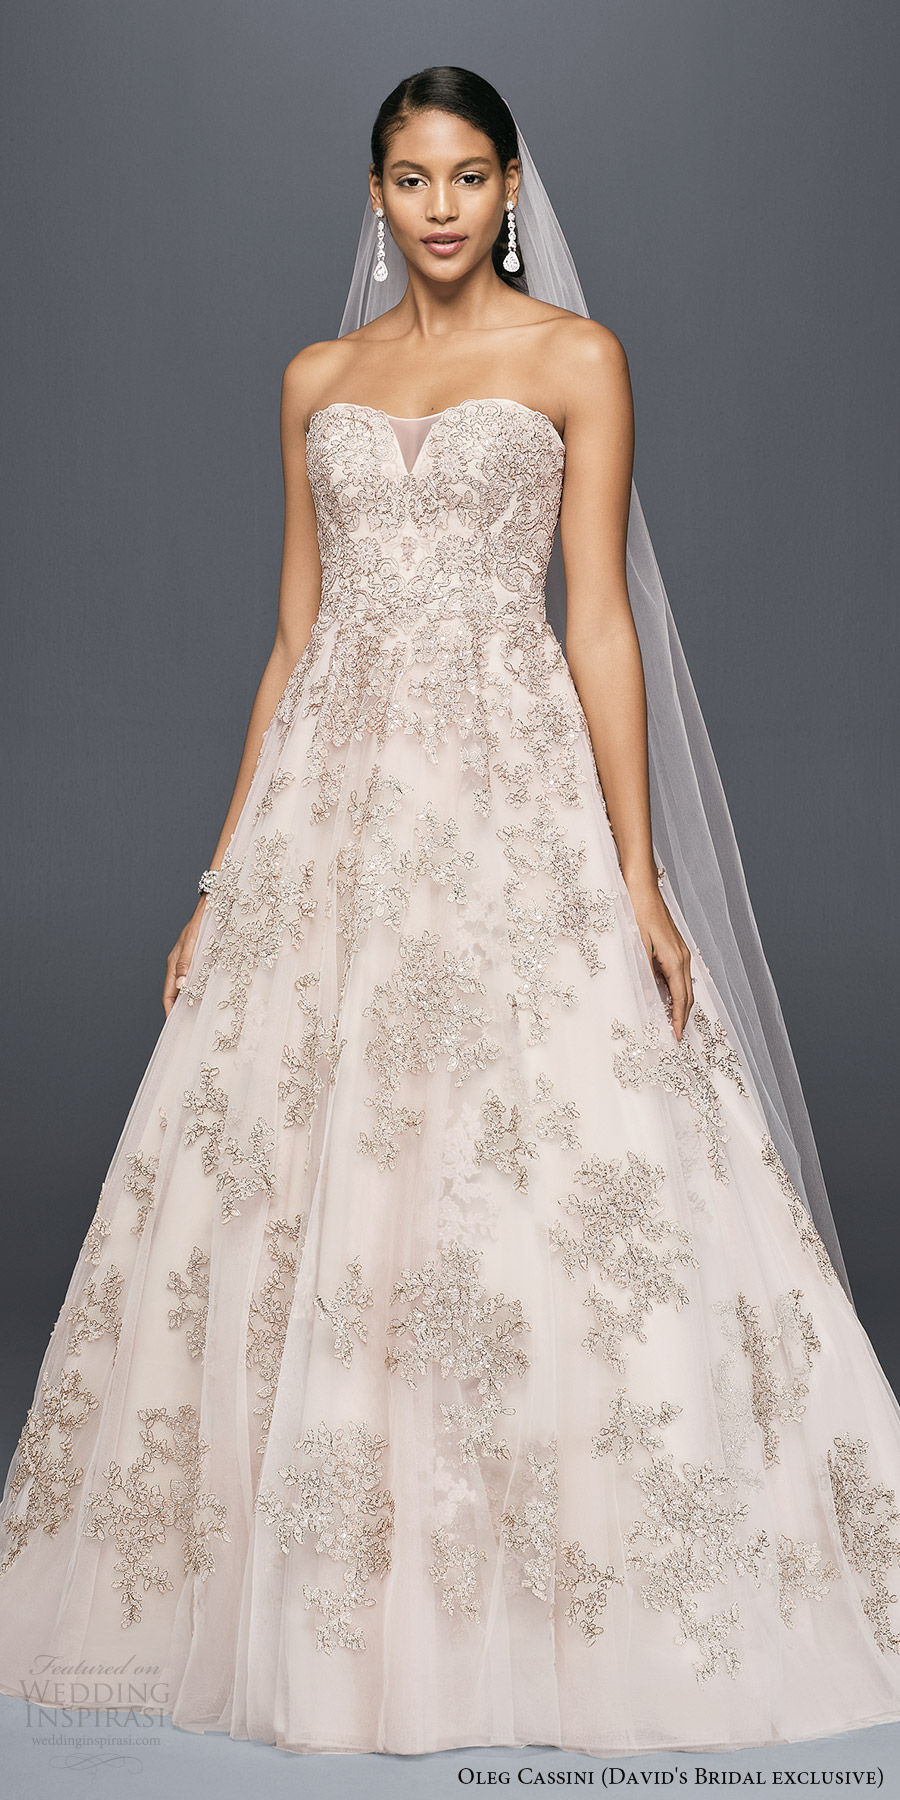 davids bridal (cwg767 oleg cassini) strapless sweetheart embellished lace a line wedding dress blush rose gold mv